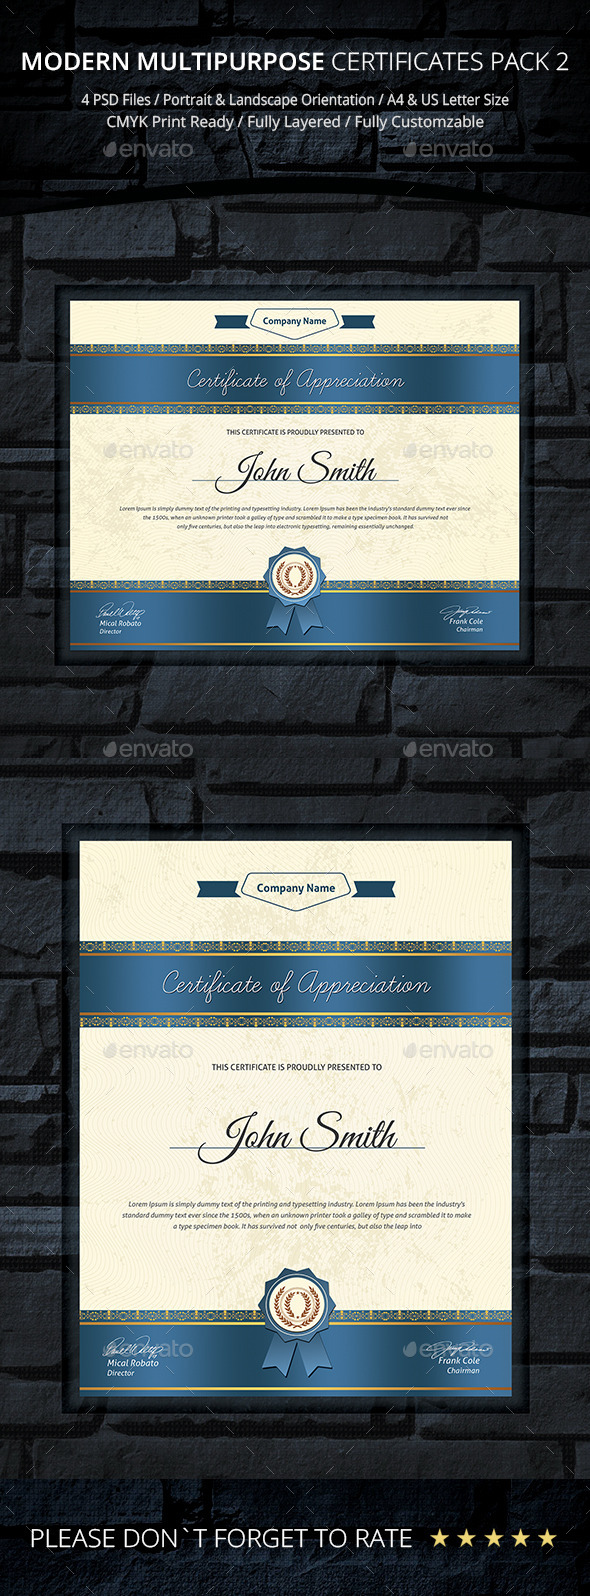 GraphicRiver Modern Multipurpose Certificates Pack 2 9598021